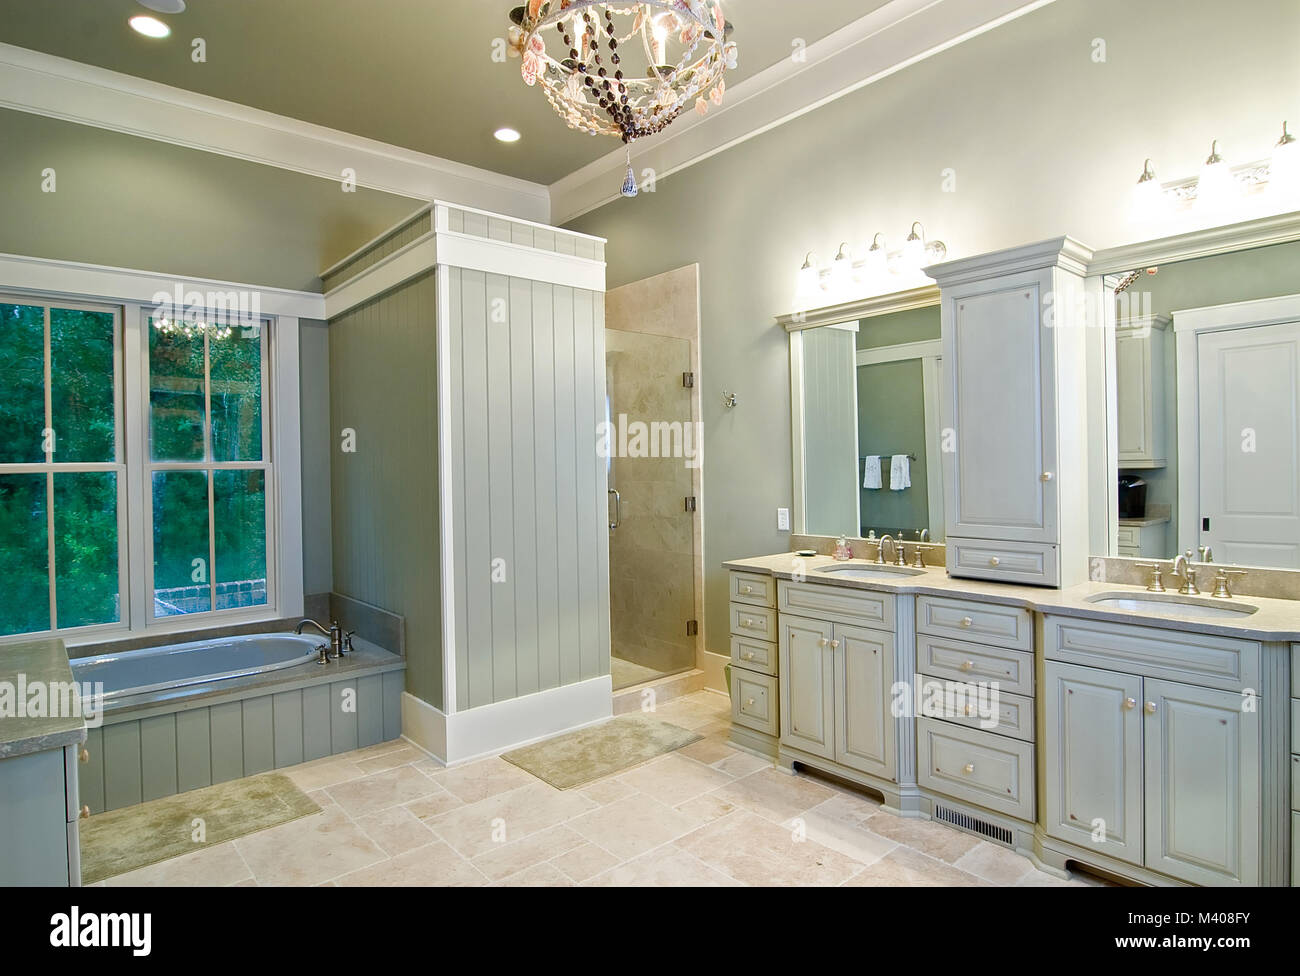 expensive modern bathroom remodel Stock Photo: 174569023 - Alamy